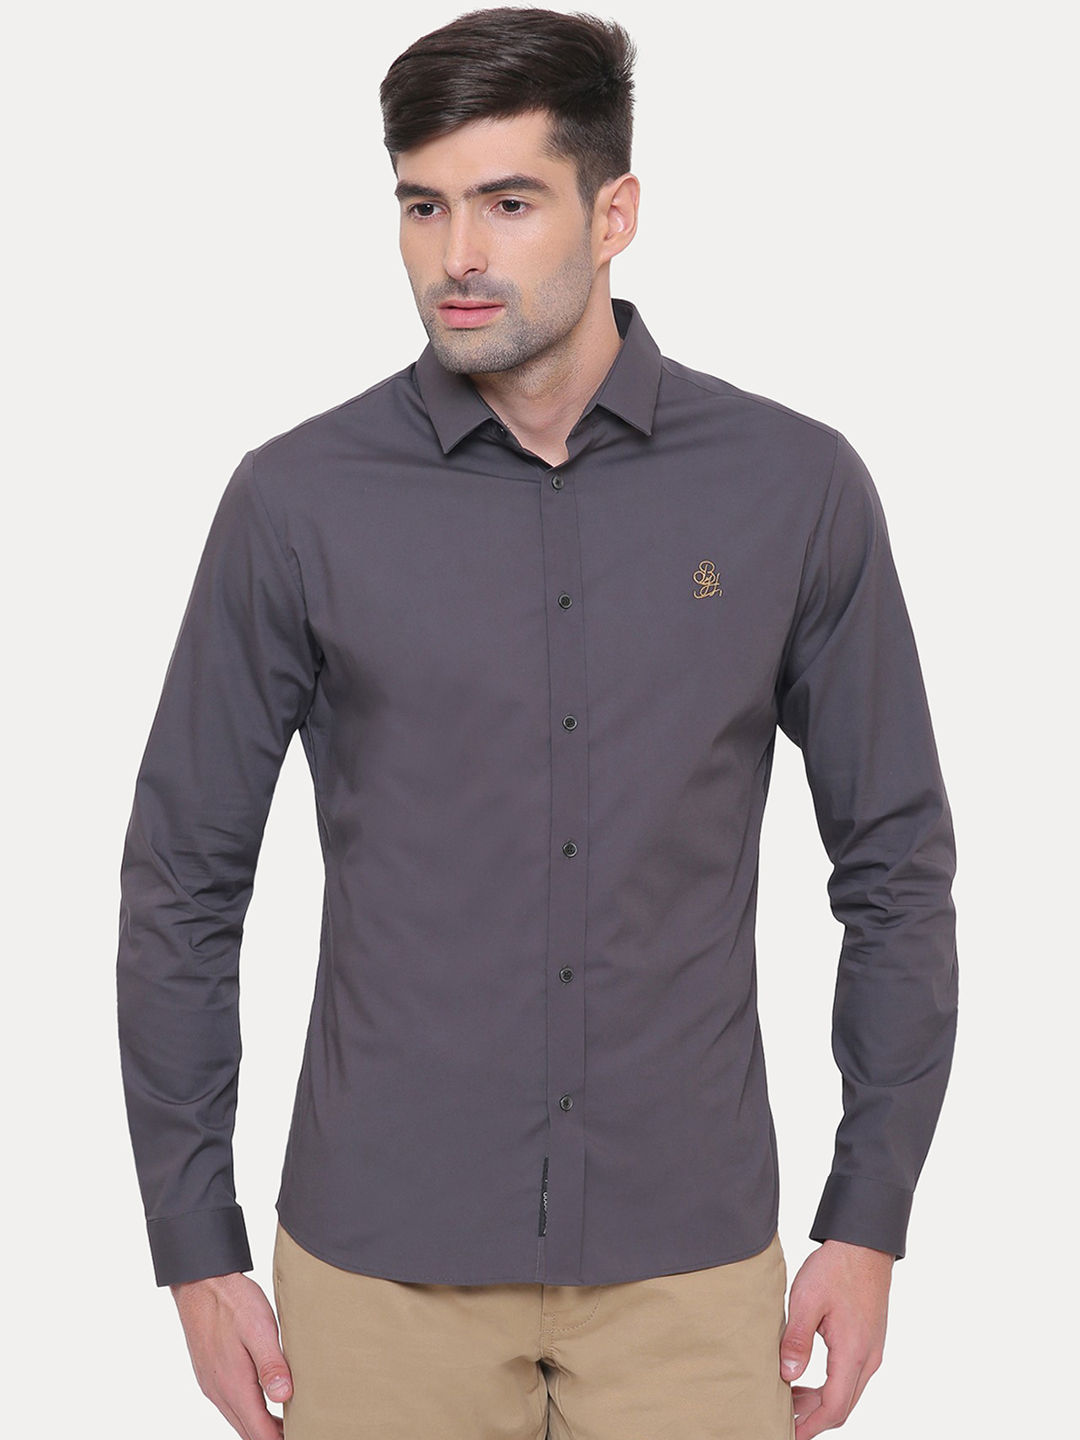 CHARCOAL SOLID STRETCH SHIRT